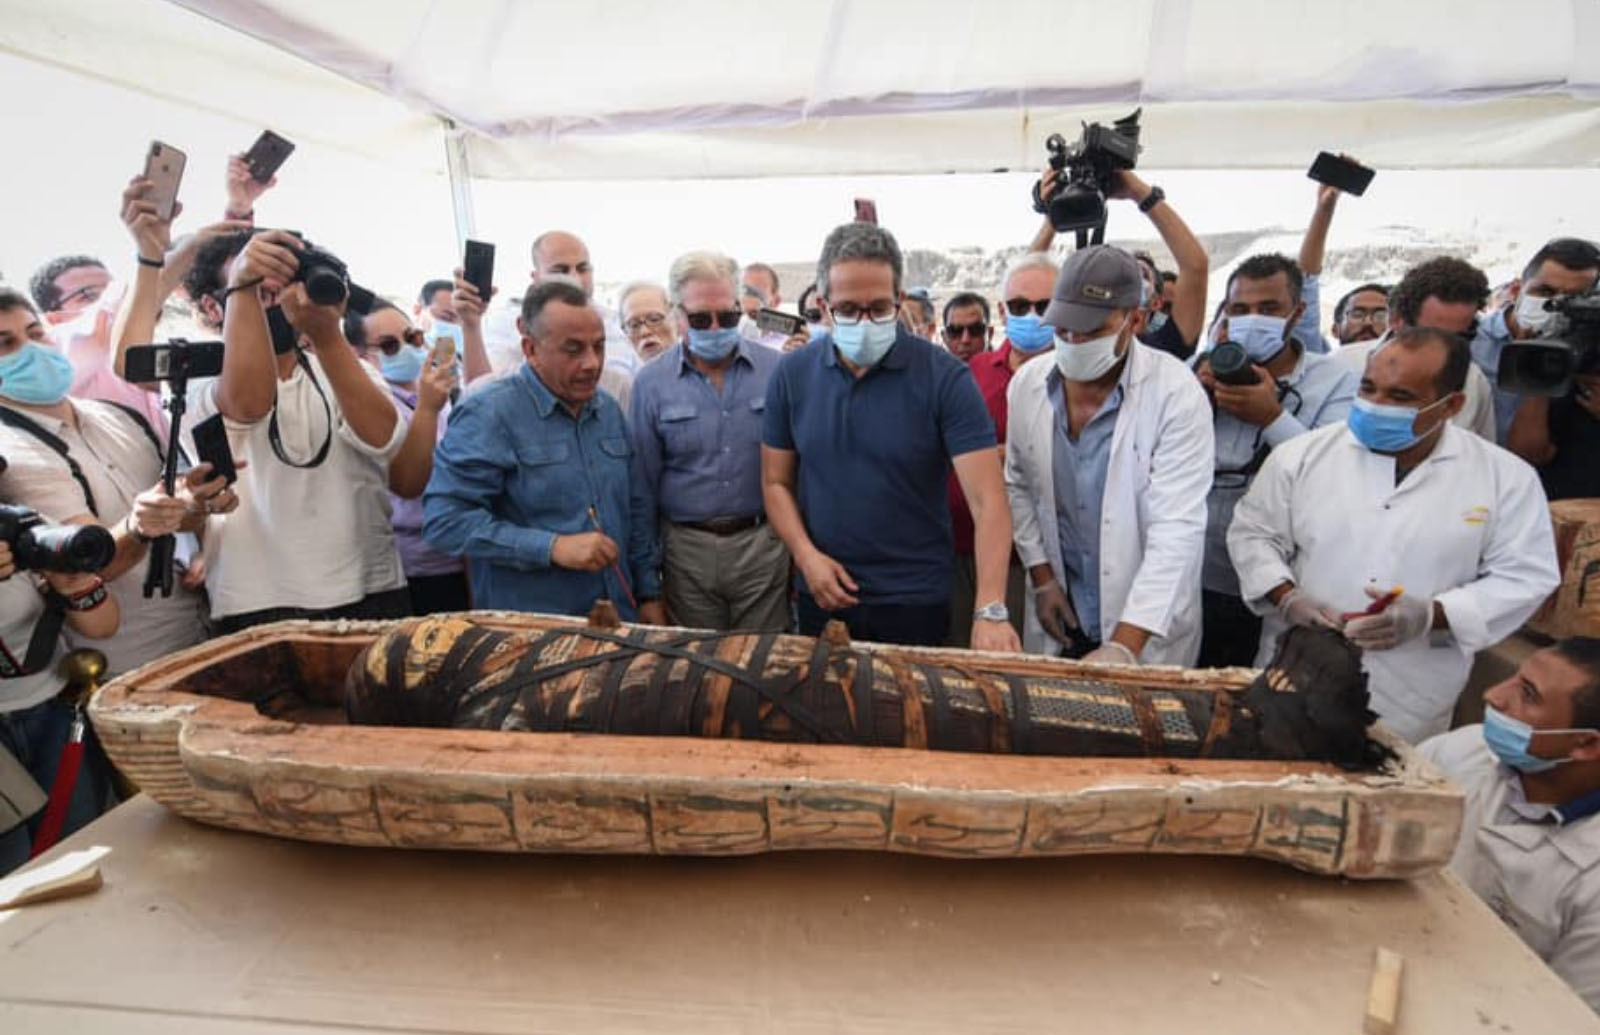 Opening ancient Egyptian coffins in 2020 seems like a bad idea, but it happened